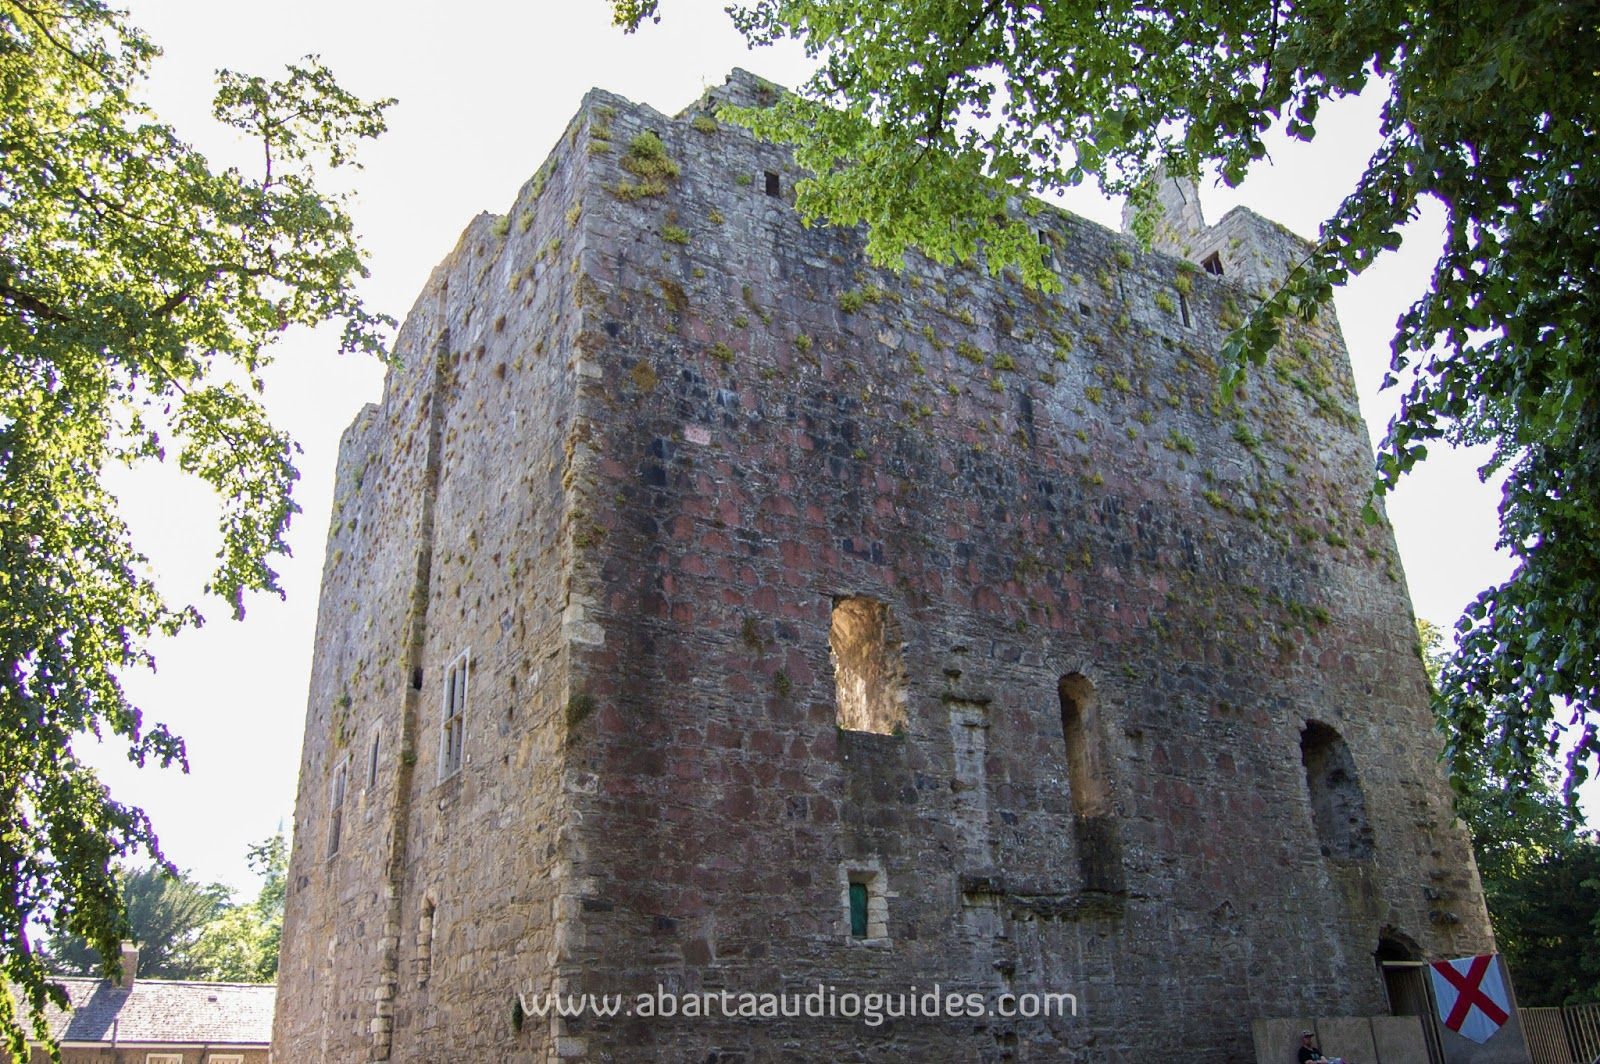 Maynooth castle county kildare time travel ireland for Kildare castle